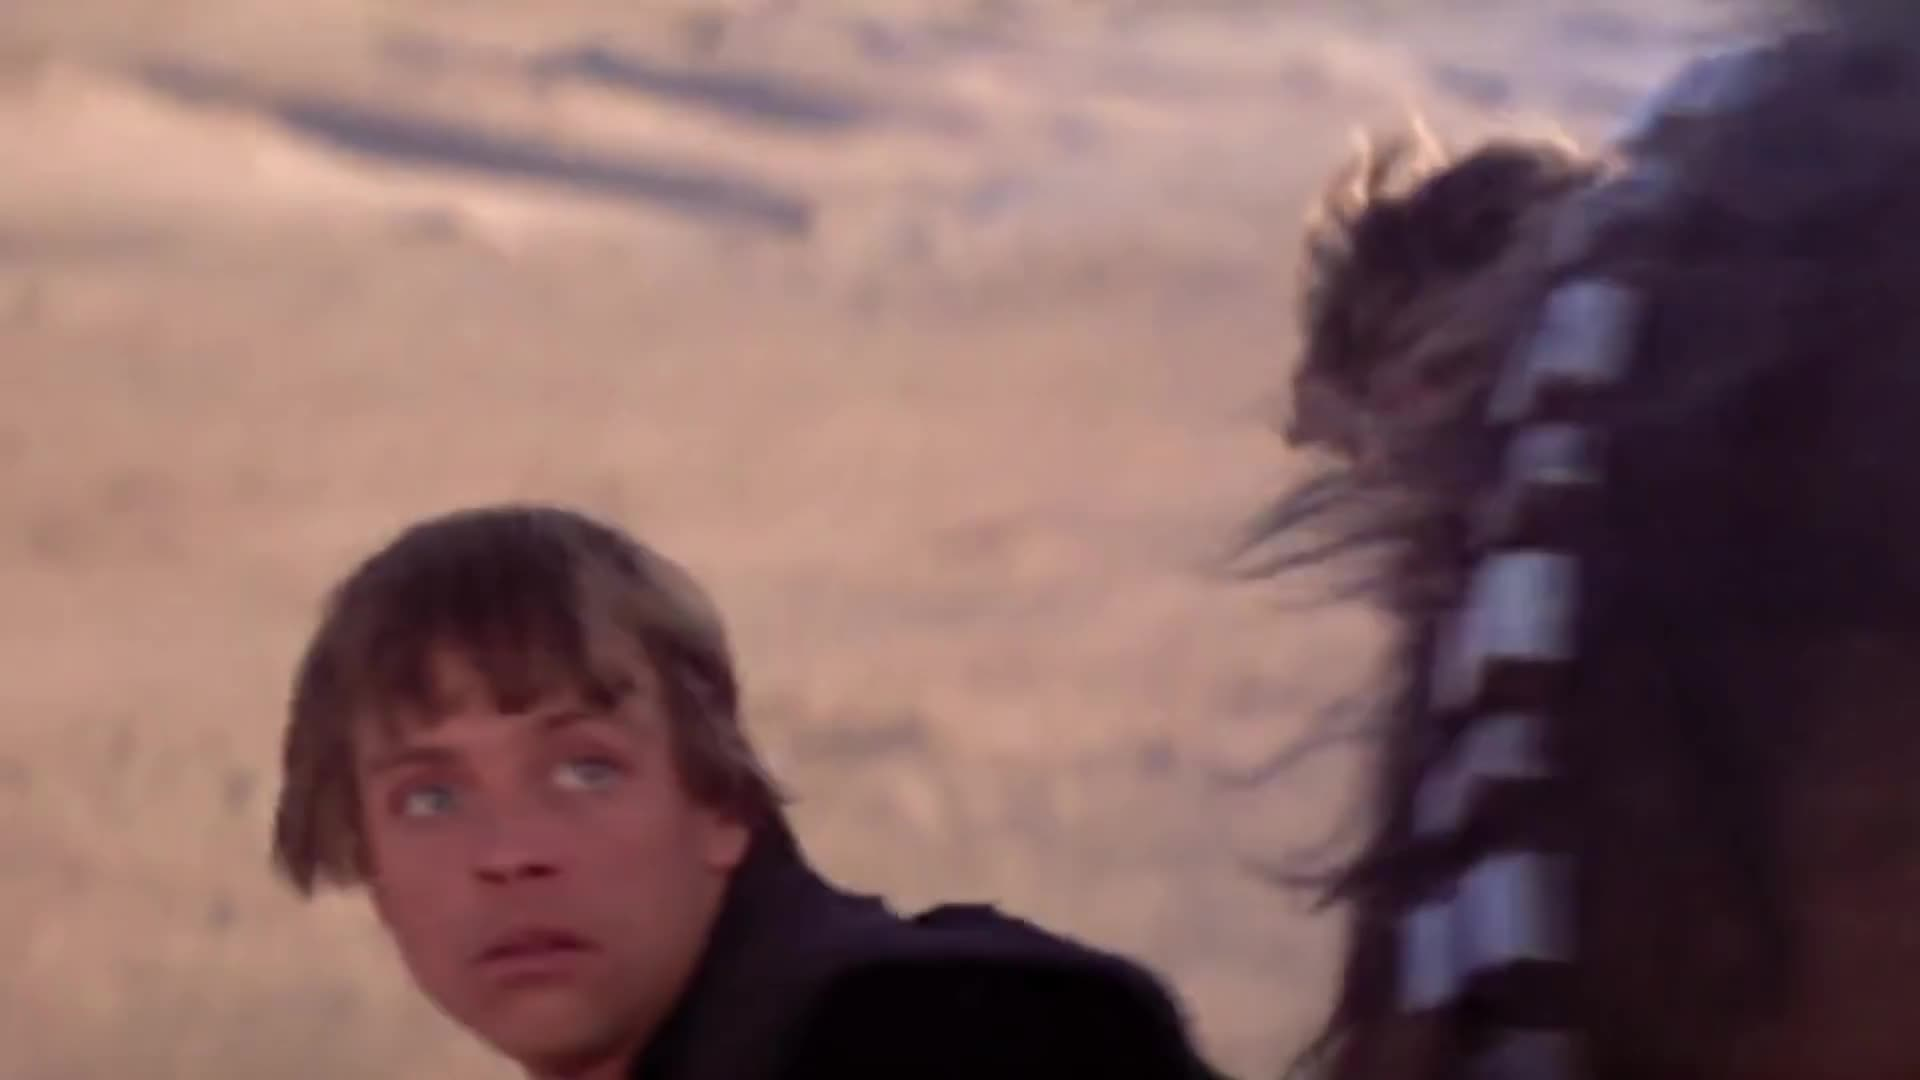 Star Wars Episode 6 Gifs Search | Search & Share on Homdor